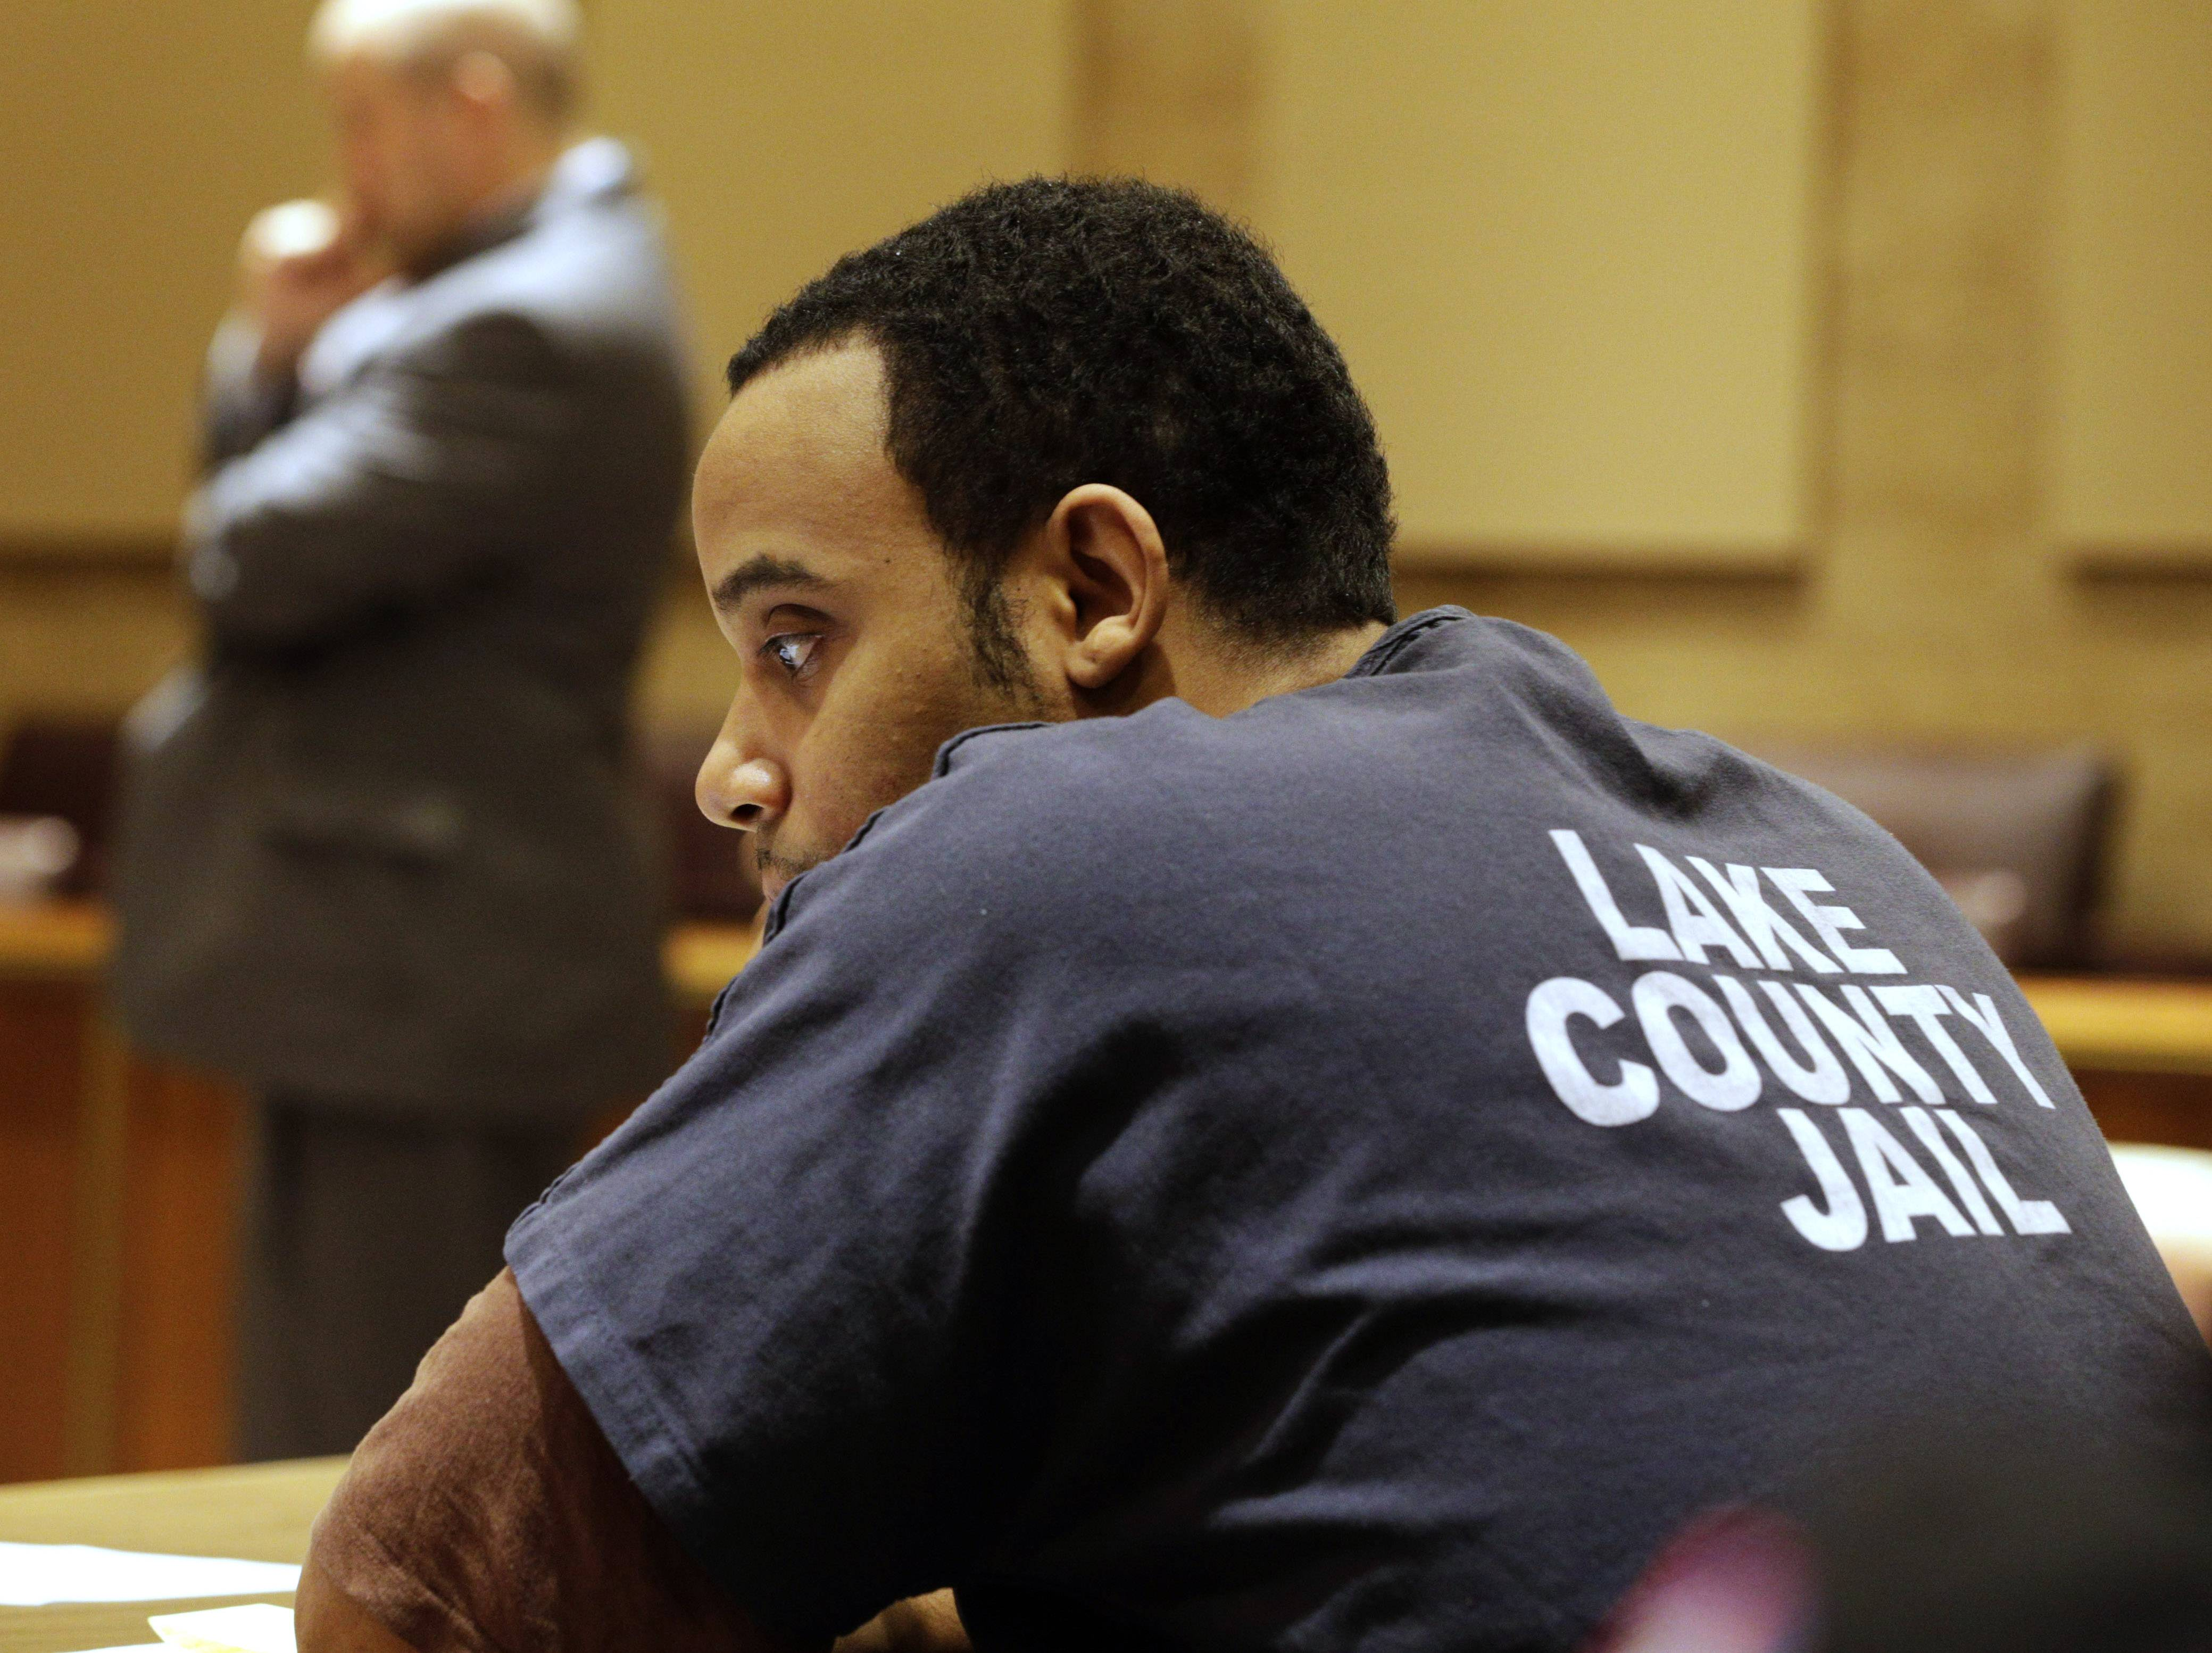 Demetries Thorpe, 27, at his sentencing hearing at the Lake County Courthouse in Waukegan on Tuesday. Thorpe, who admitted to killing 5-month-old Joshua Summeries, then dumping his body into a garbage can, was sentenced to 30 years in prison.